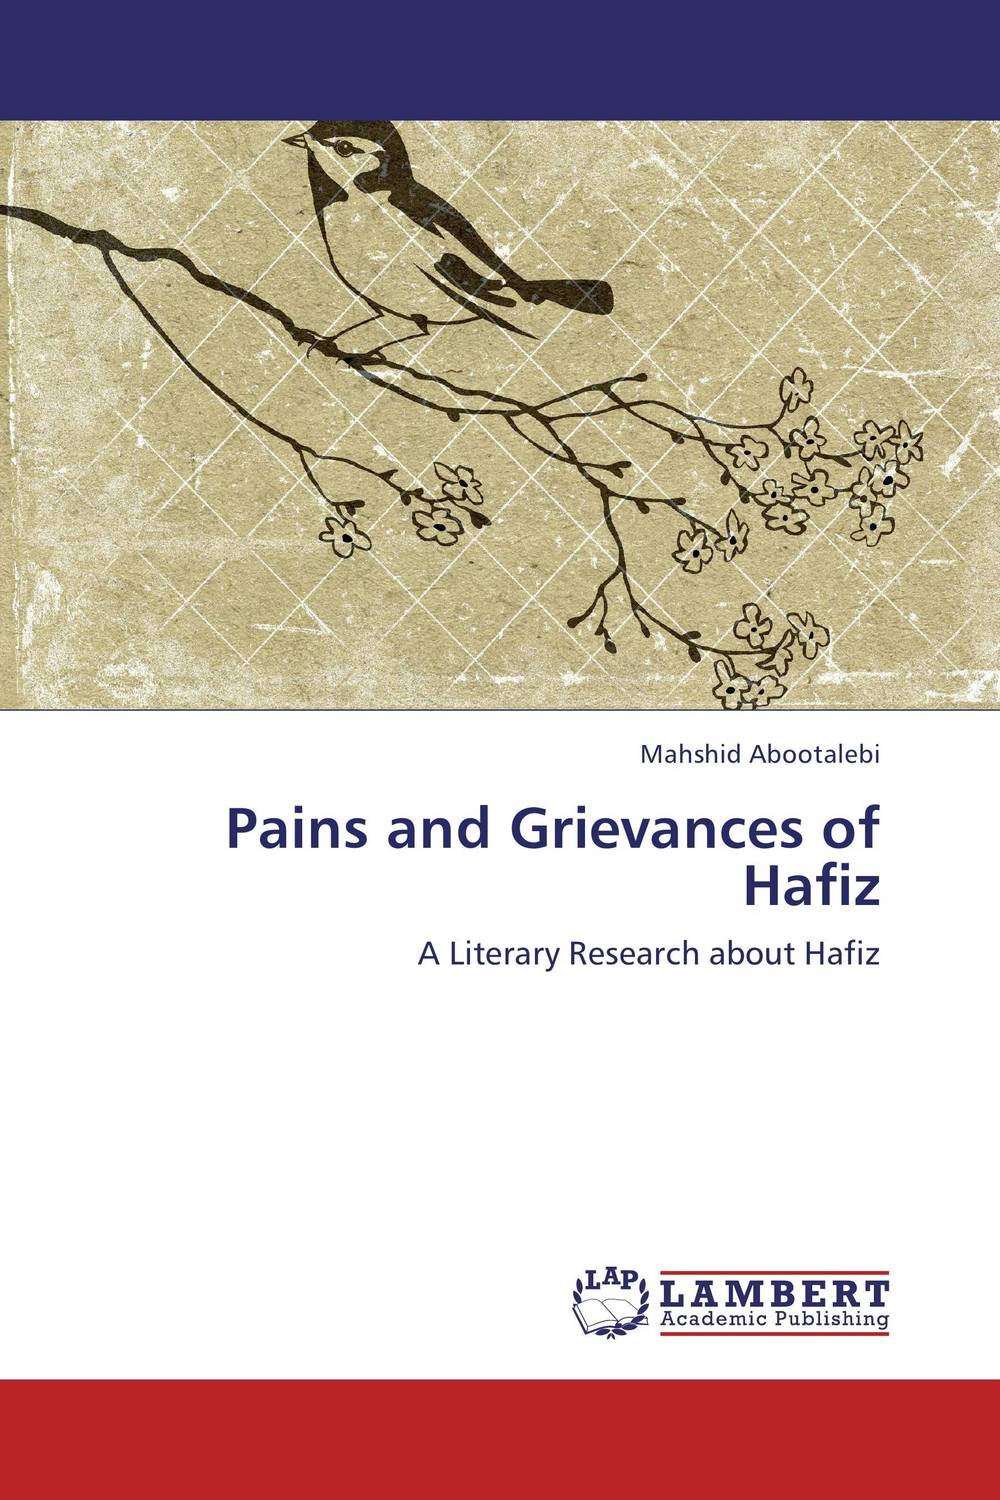 Pains and Grievances of Hafiz pains and grievances of hafiz